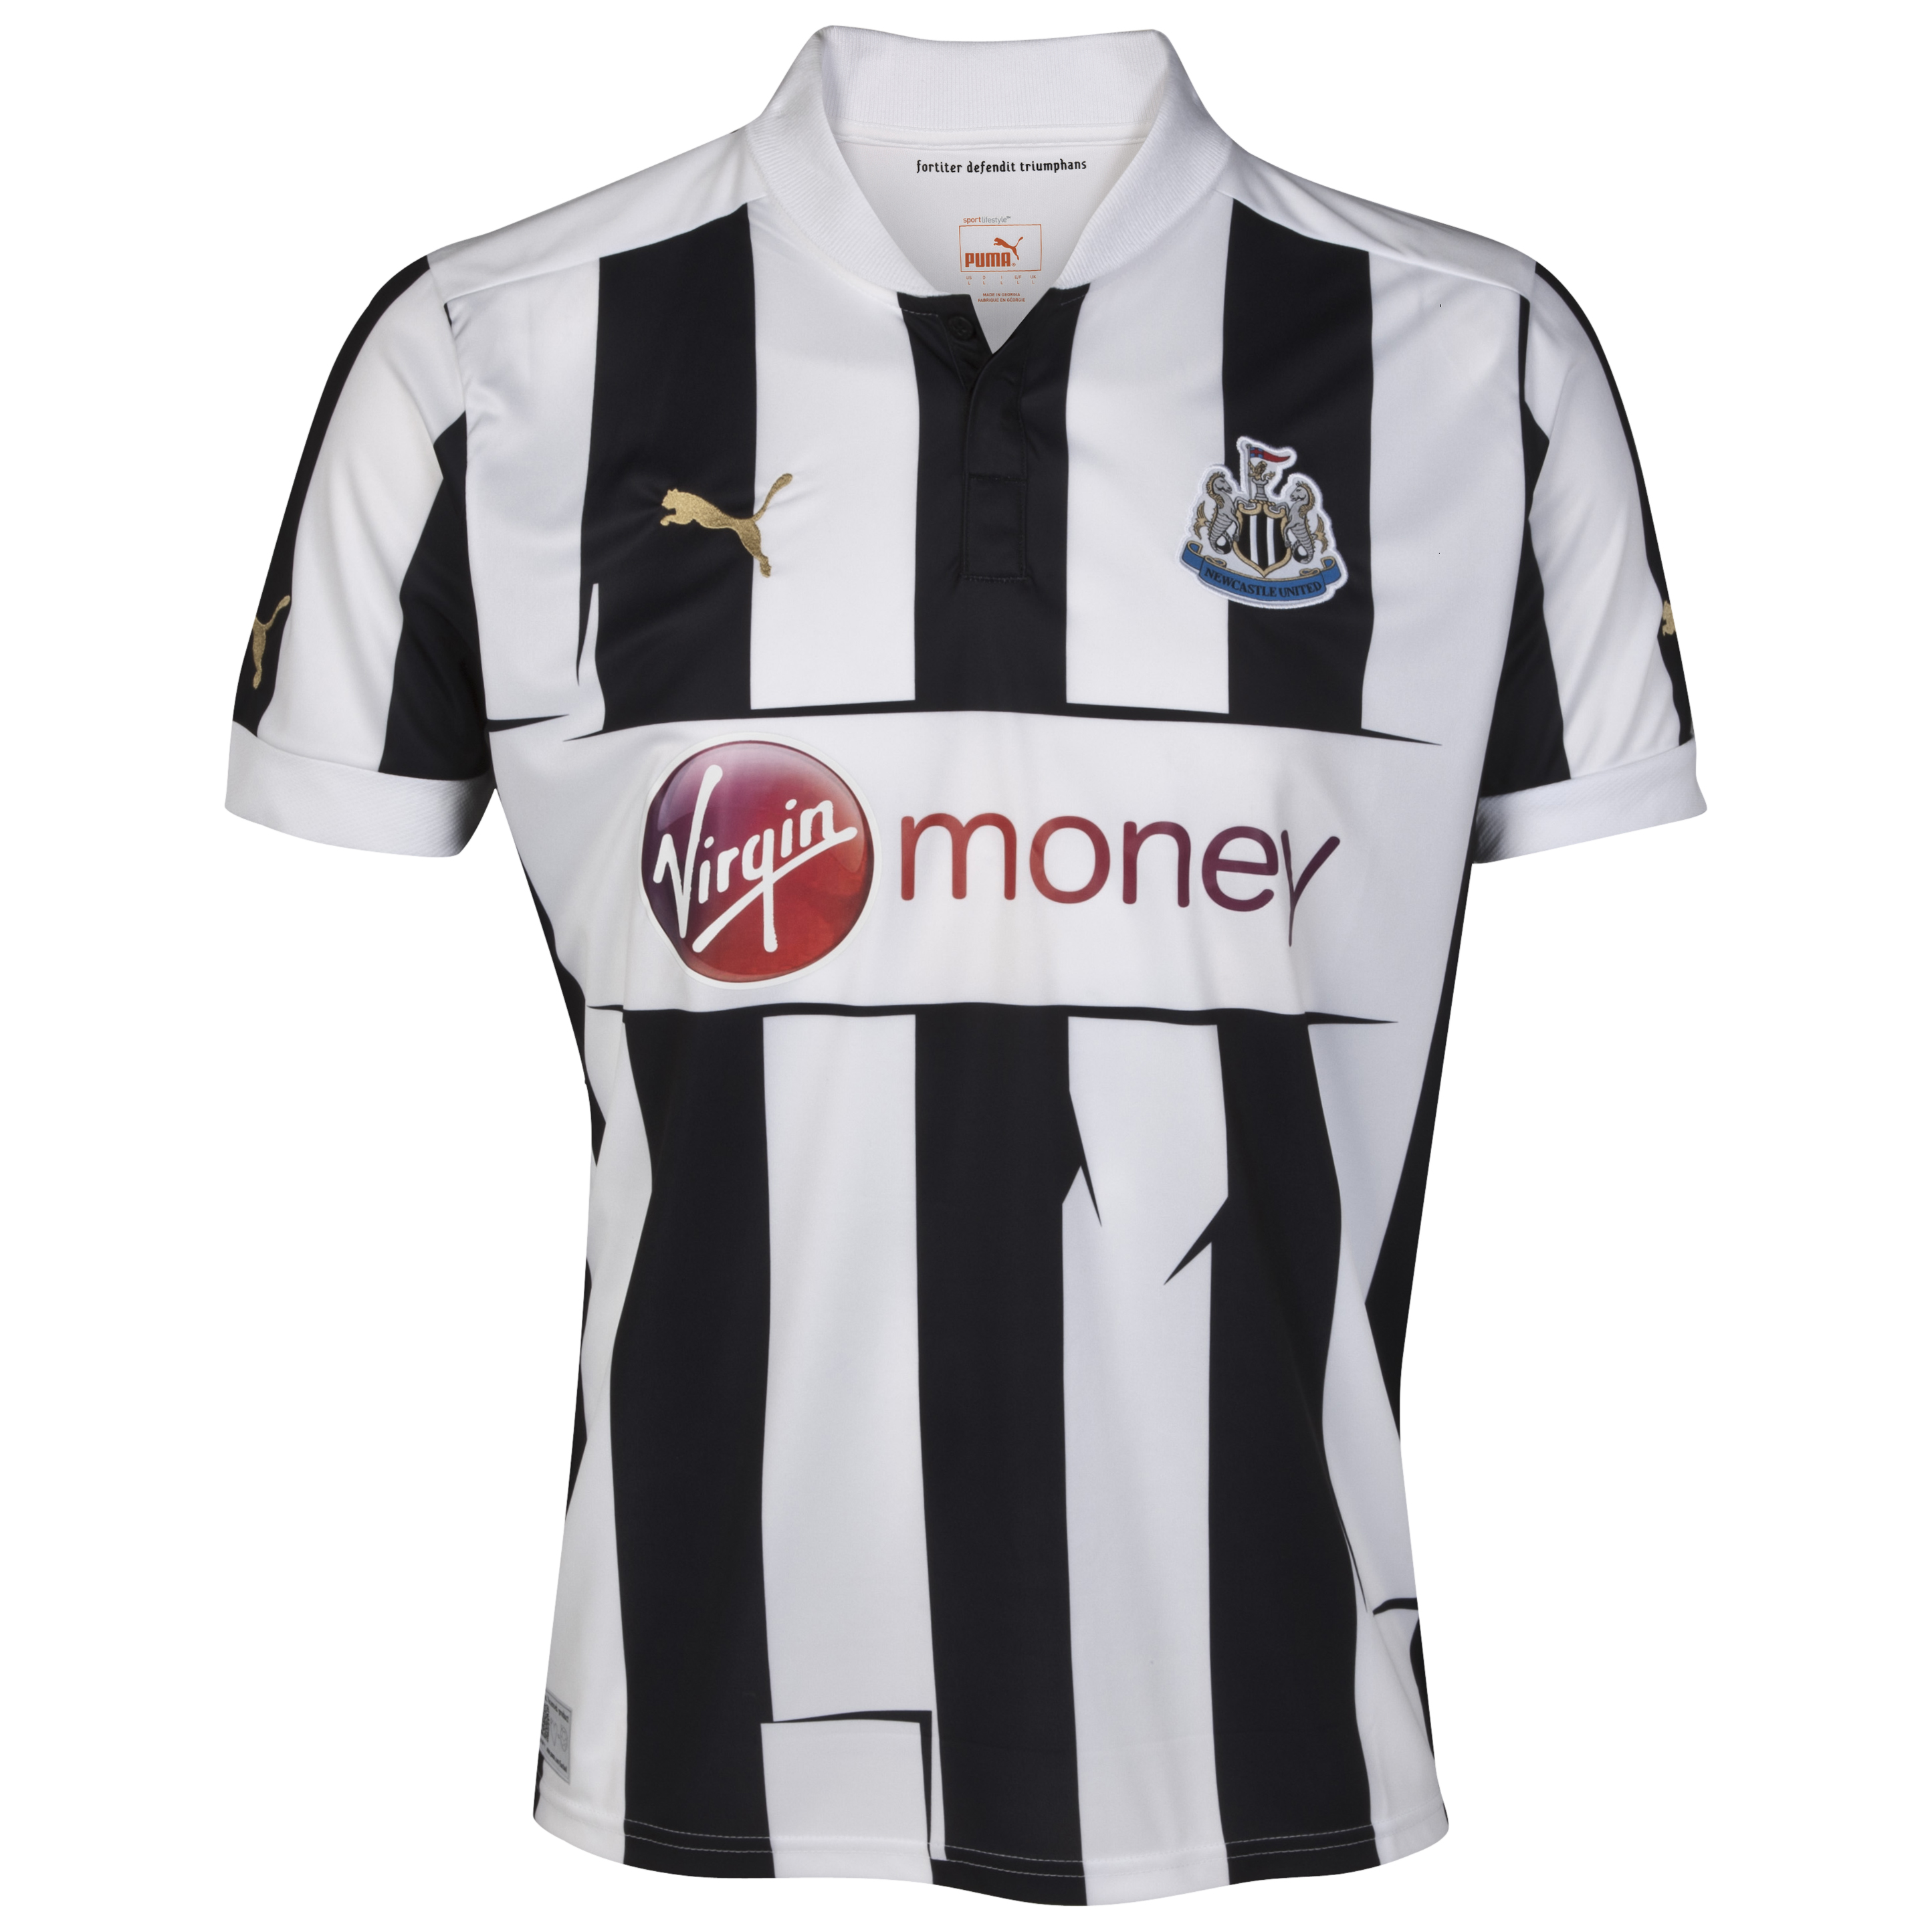 Newcastle United Home Shirt 2012/13